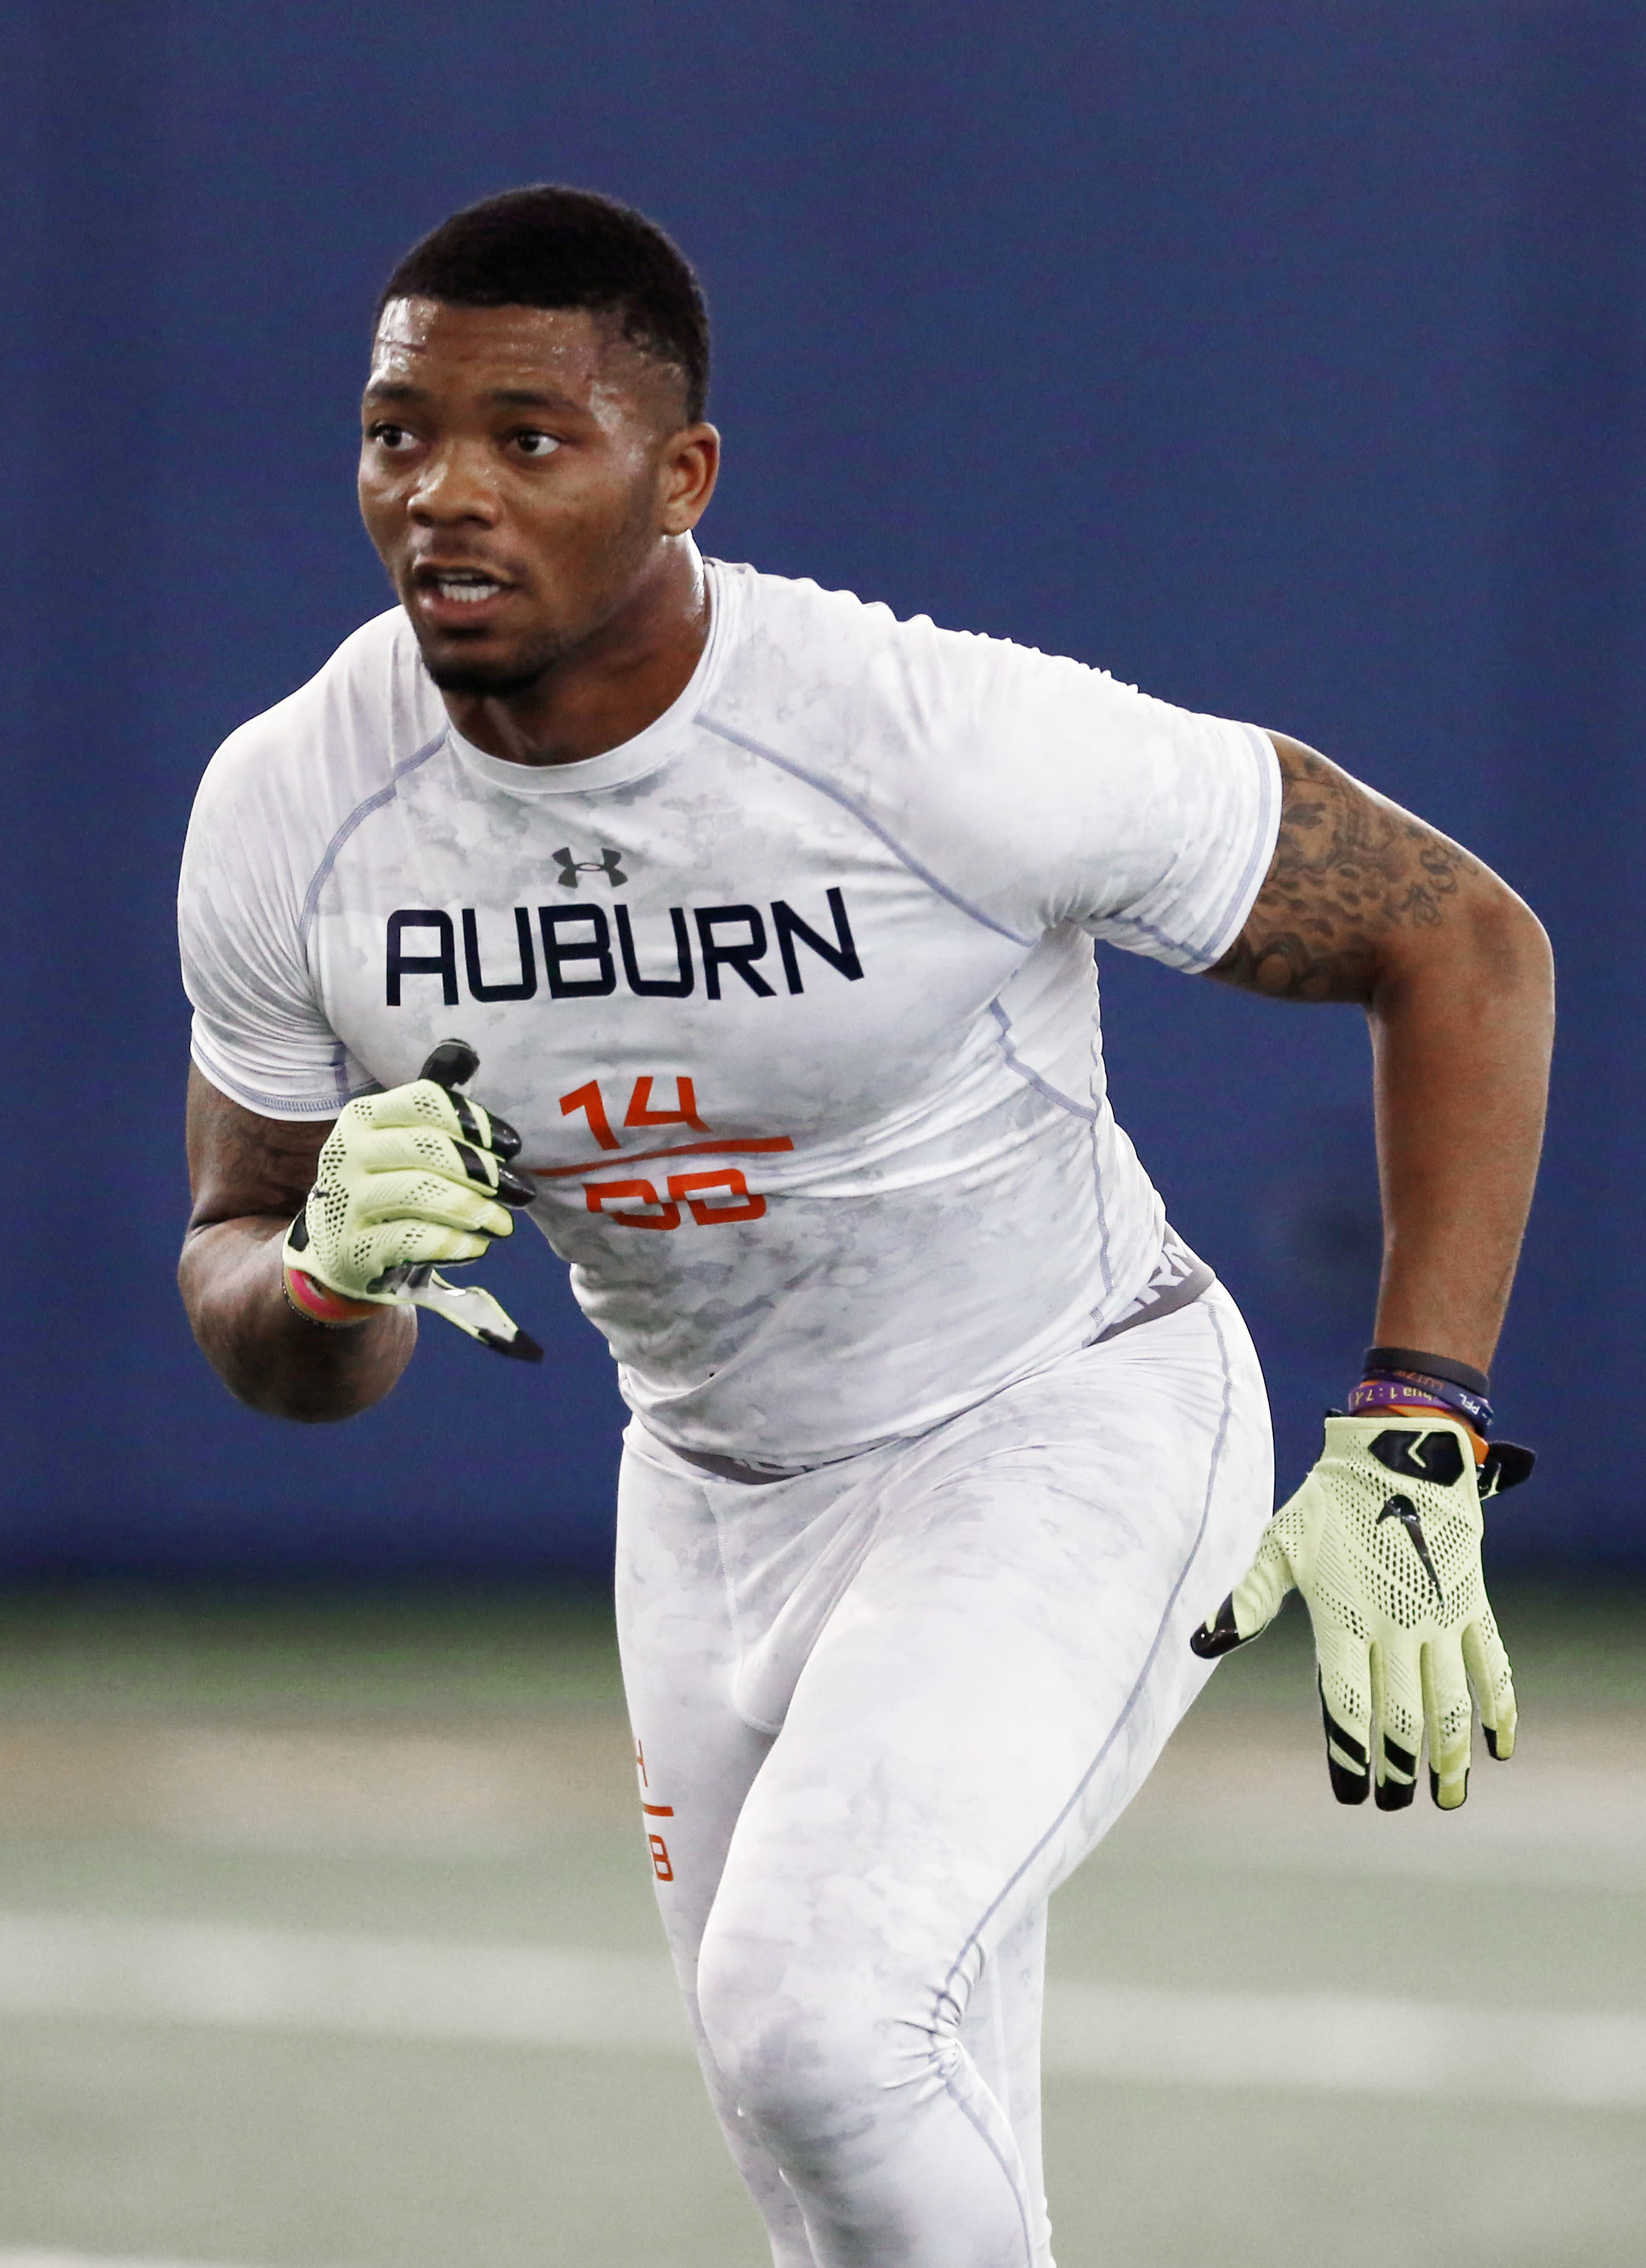 Ex-Auburn quarterback Marshall trying to find NFL home